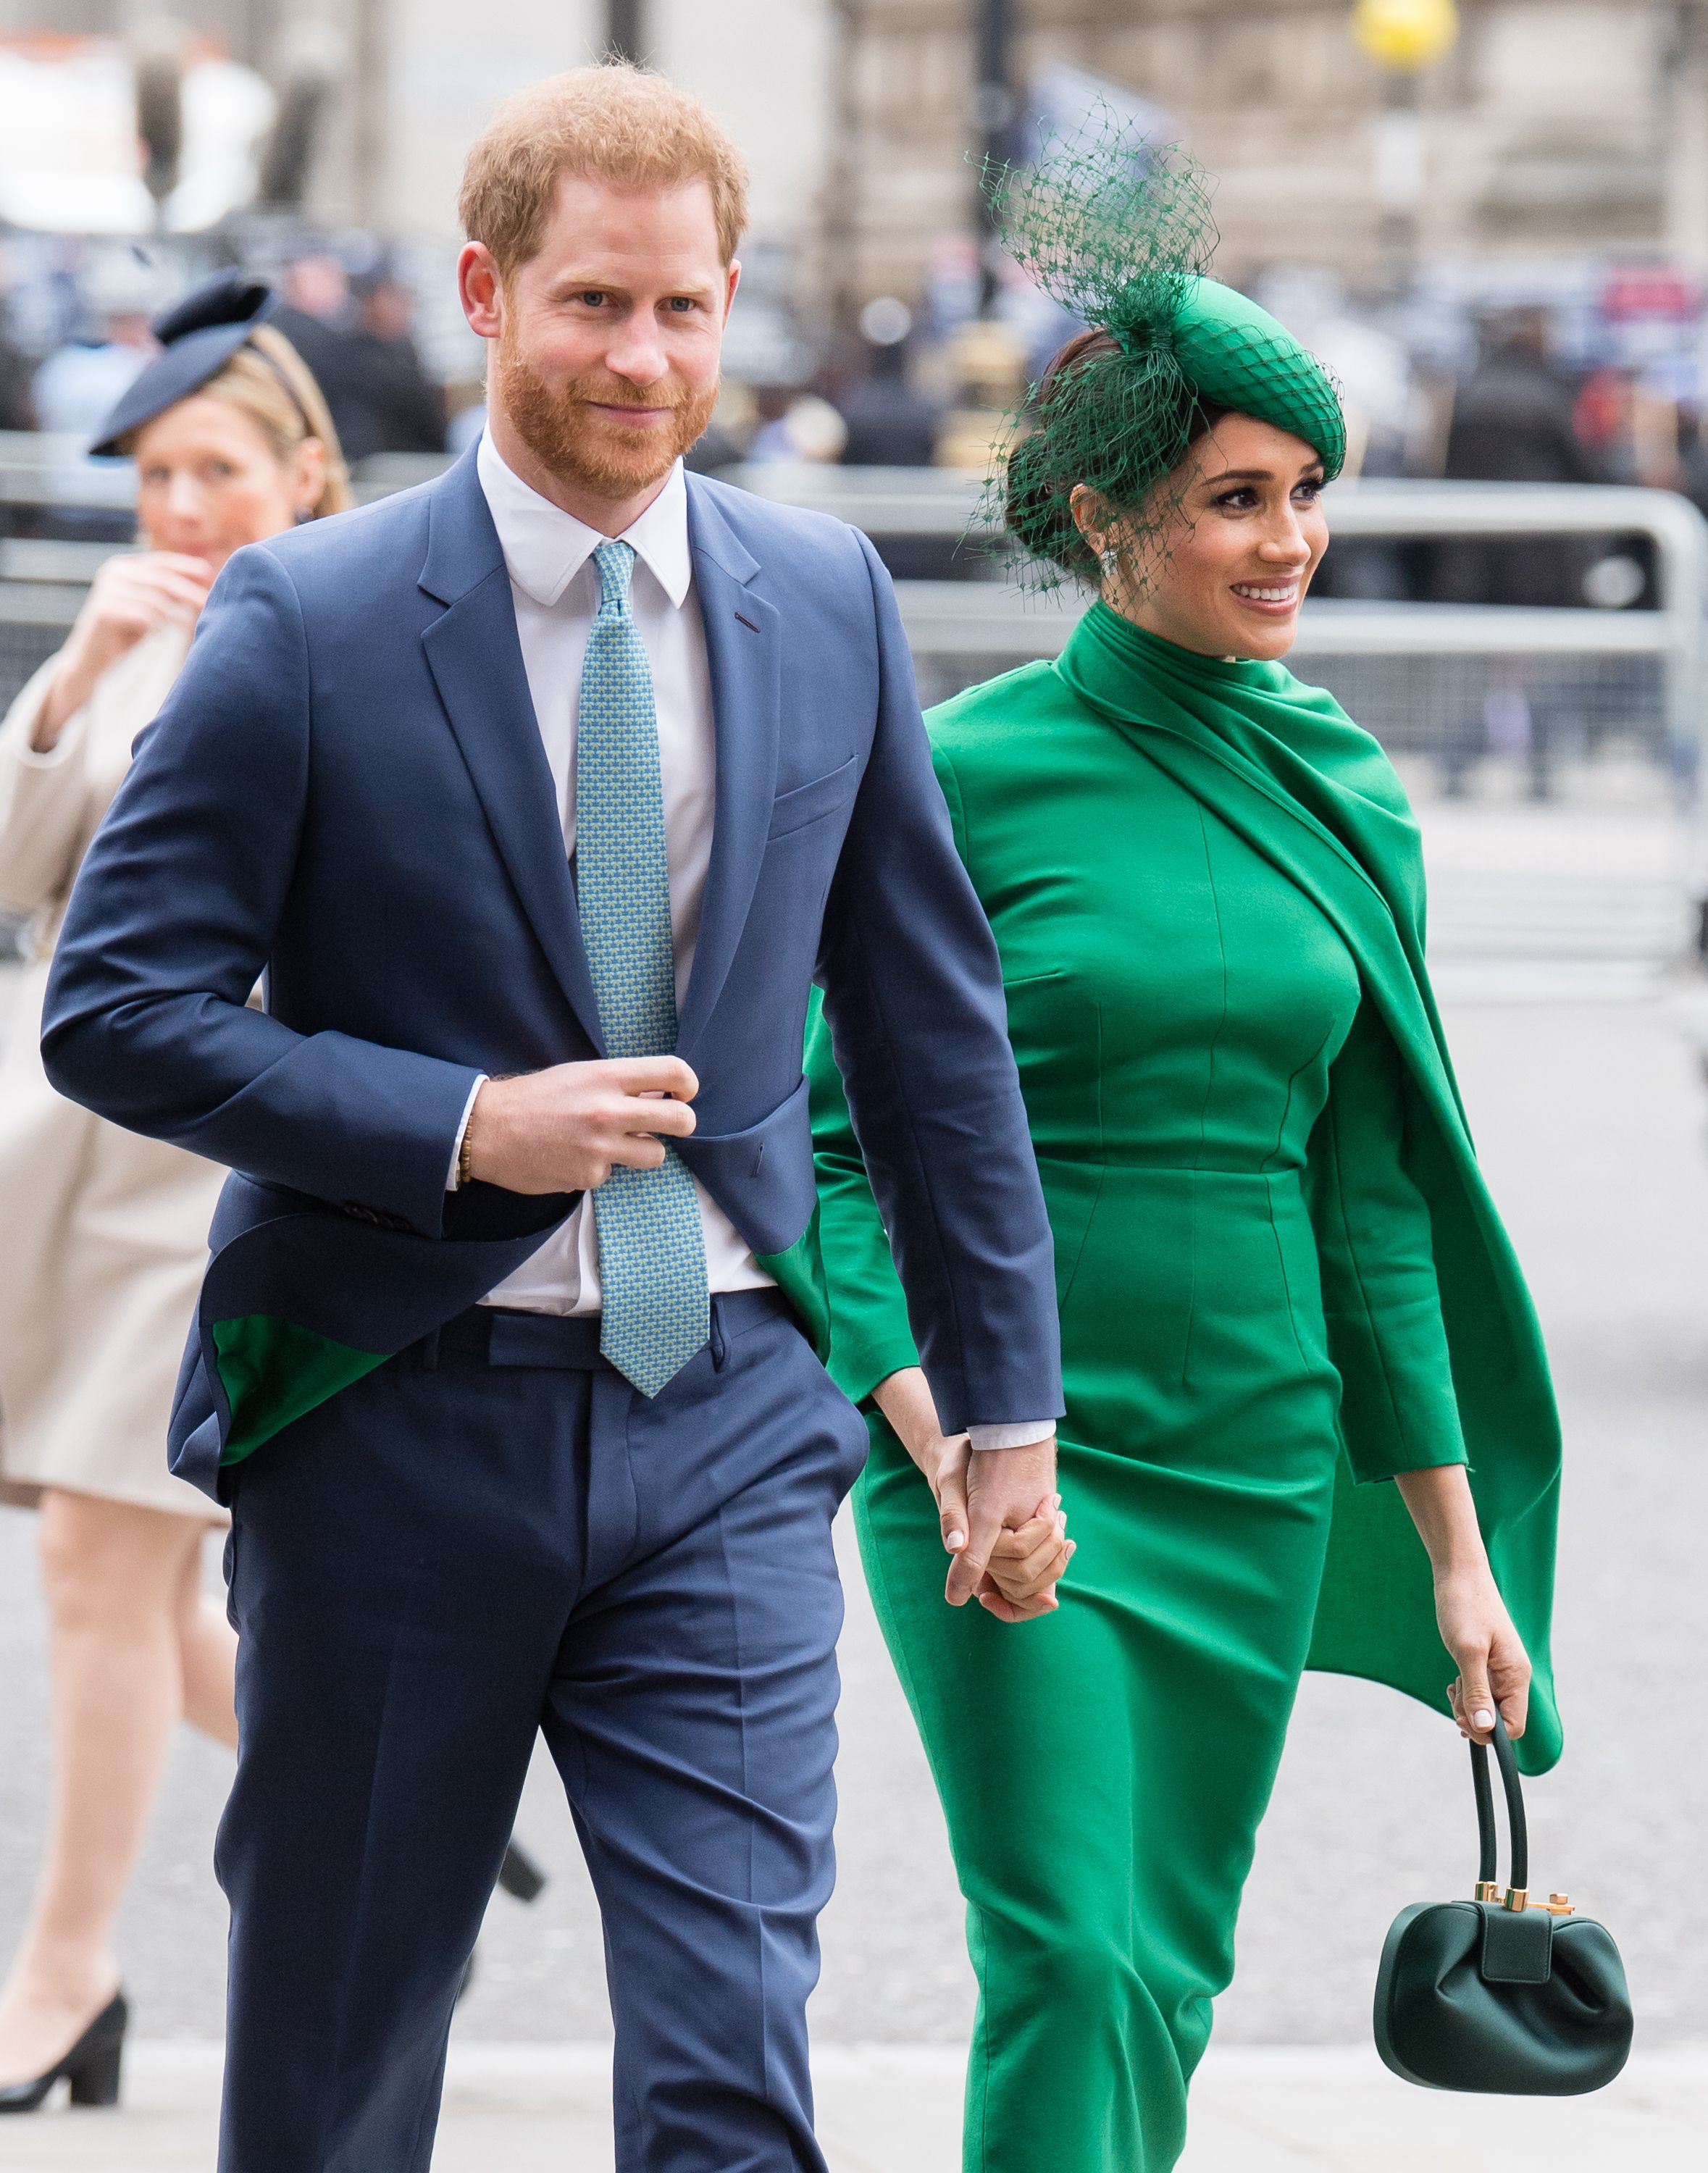 Prince Harry, Duke of Sussex and Meghan Markle, Duchess of Sussex attend the Commonwealth Day Service 2020 on March 09, 2020   Getty Images